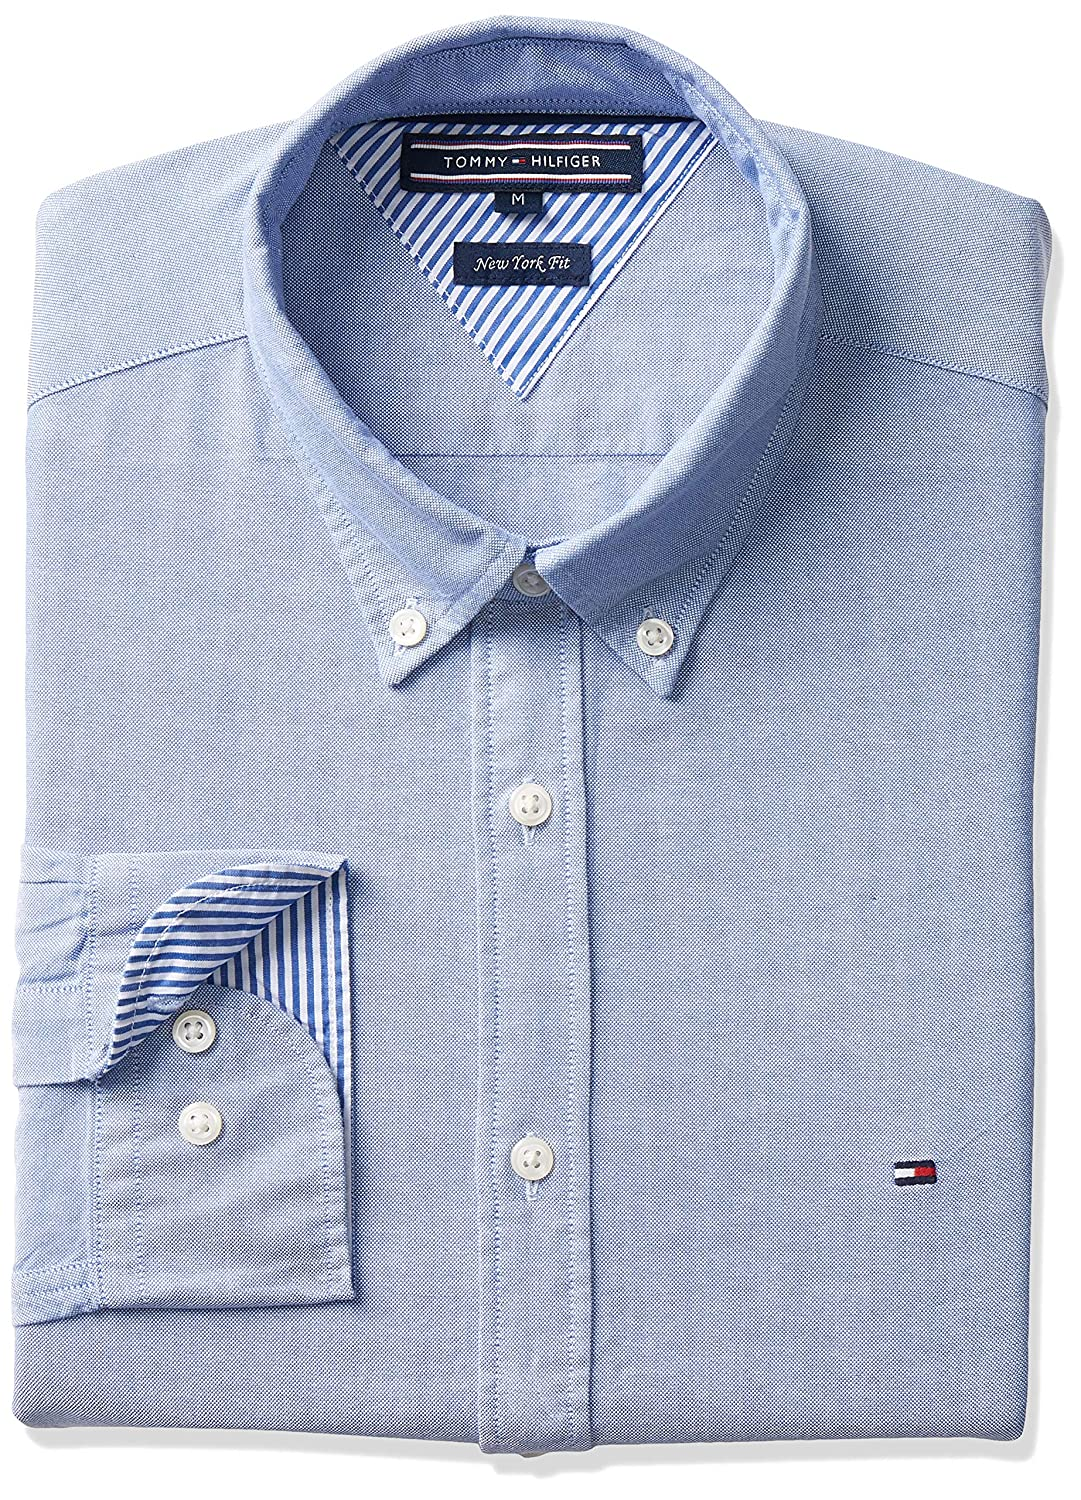 1a8293982 Tommy Hilfiger Men's Ivy Oxford Shirt: Amazon.com.au: Fashion